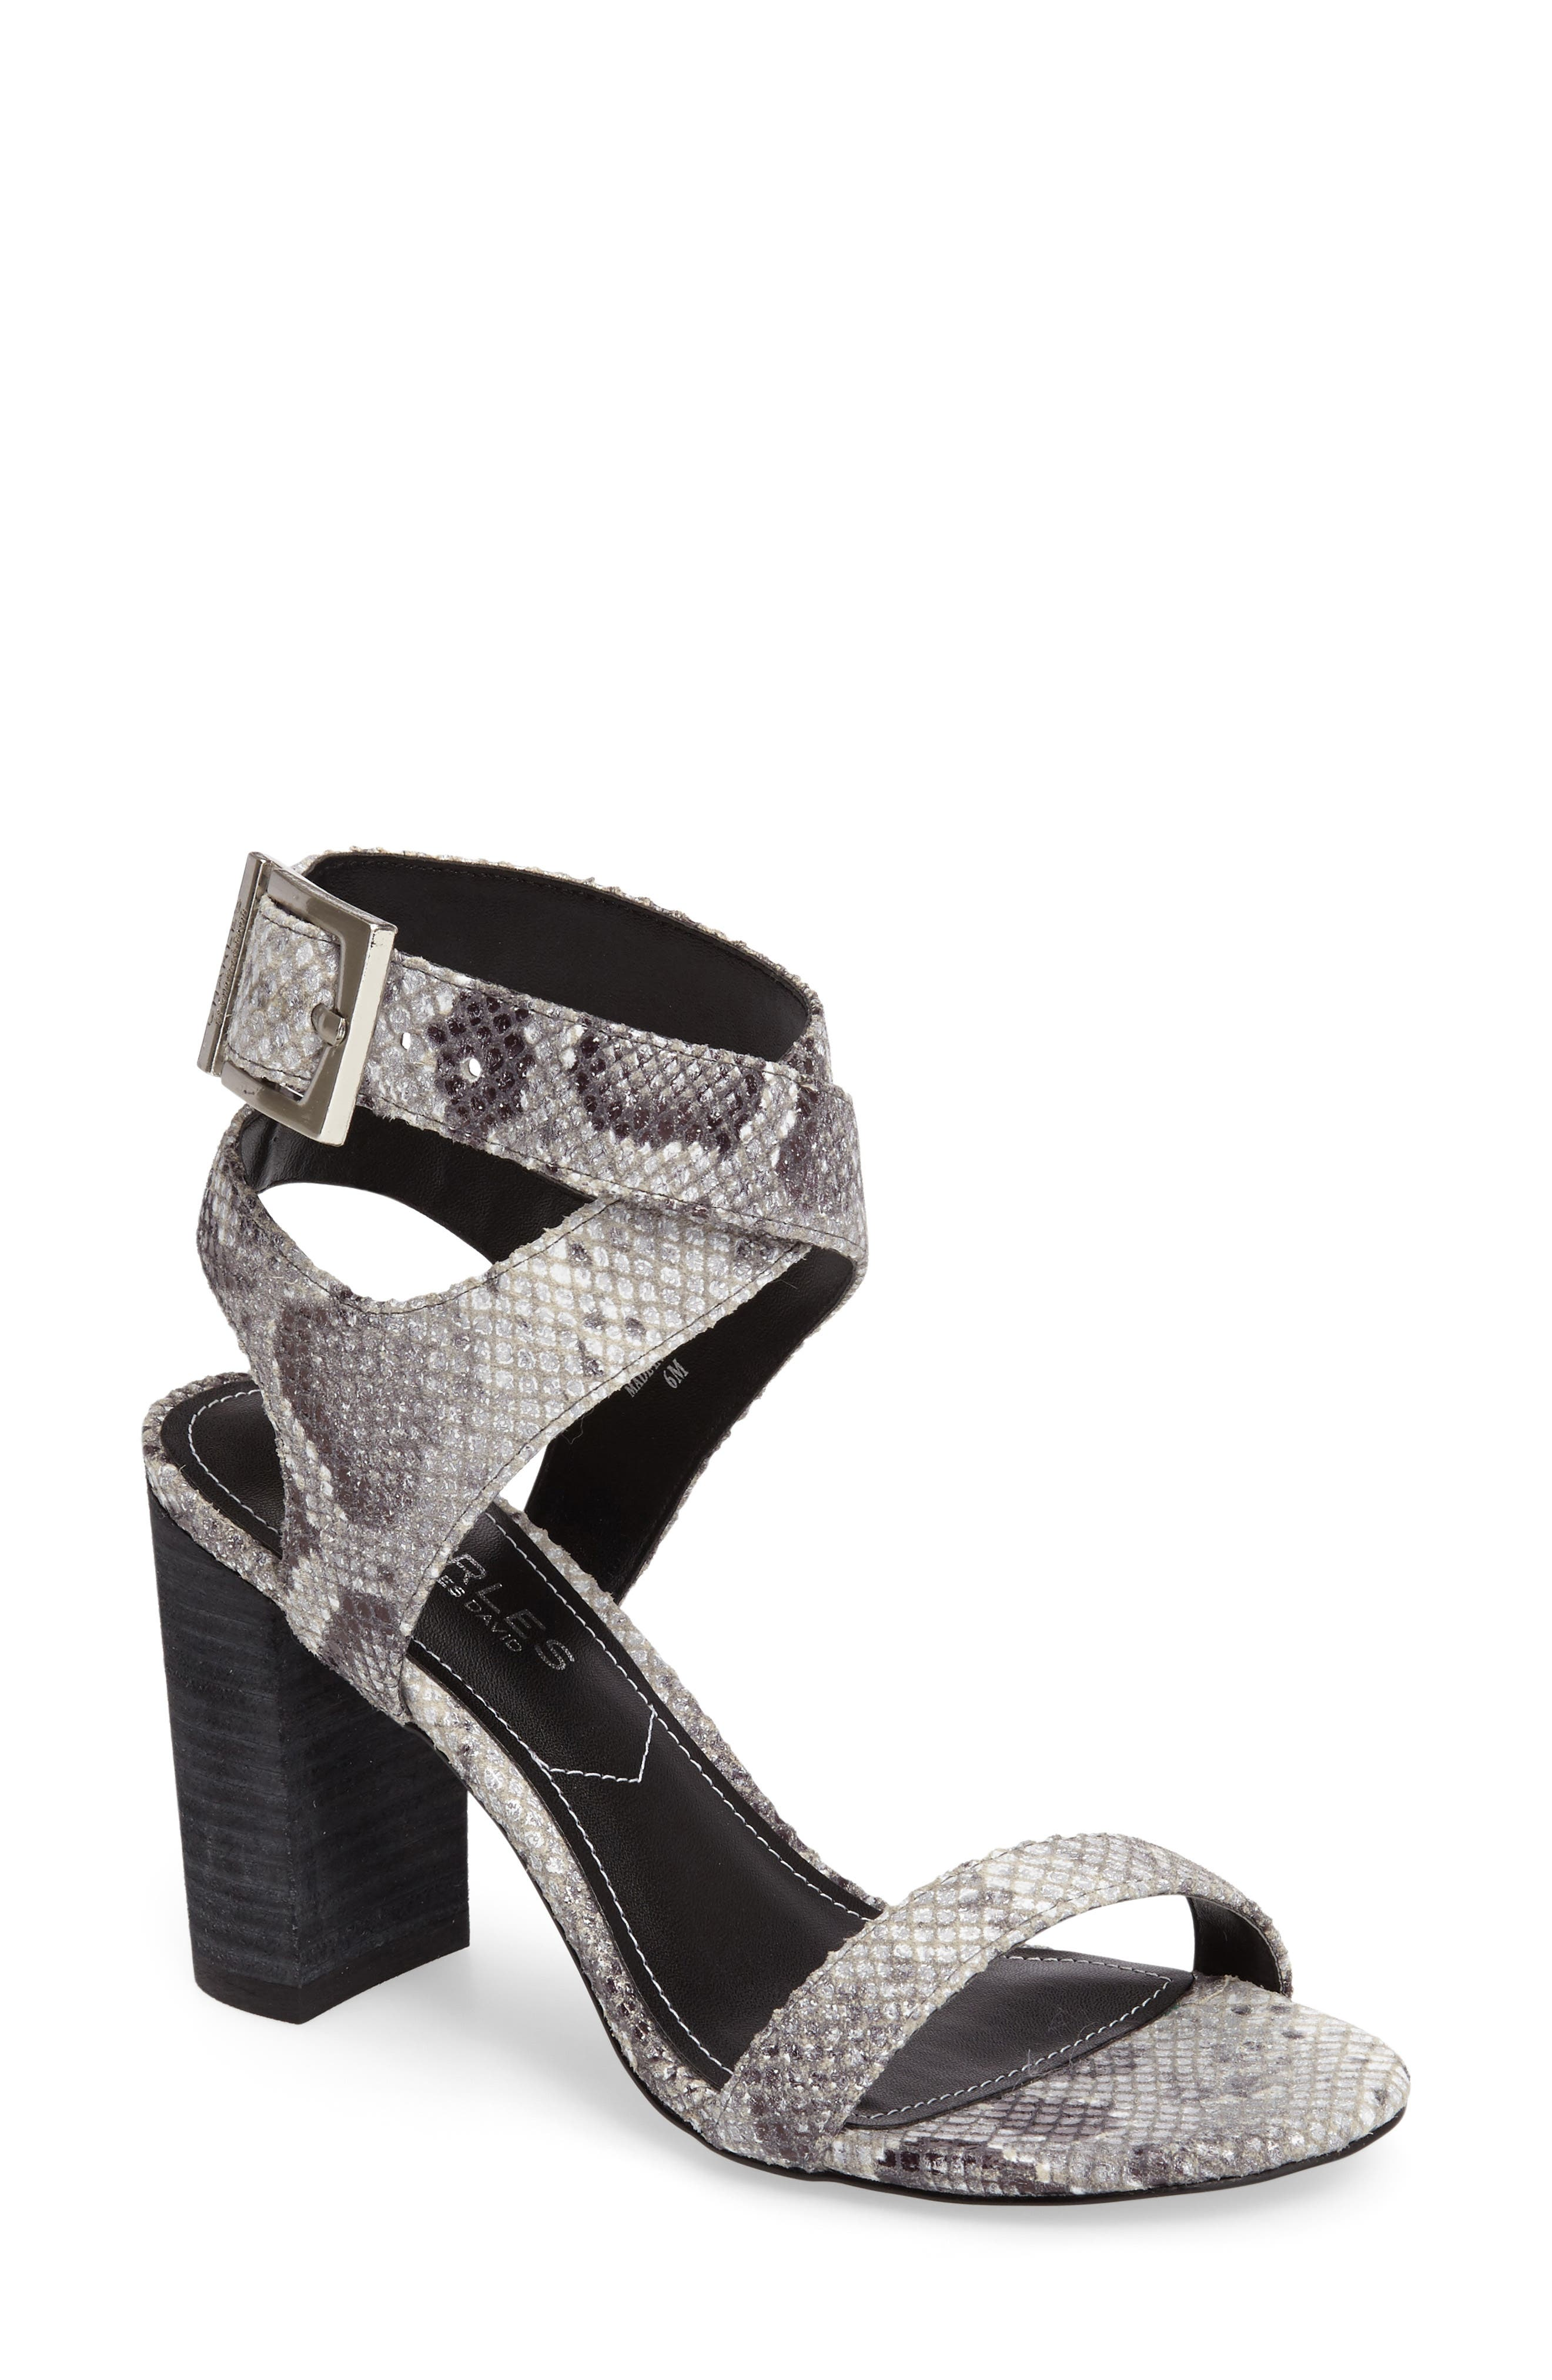 Alternate Image 1 Selected - Charles by Charles David Eddie Sandal (Women)